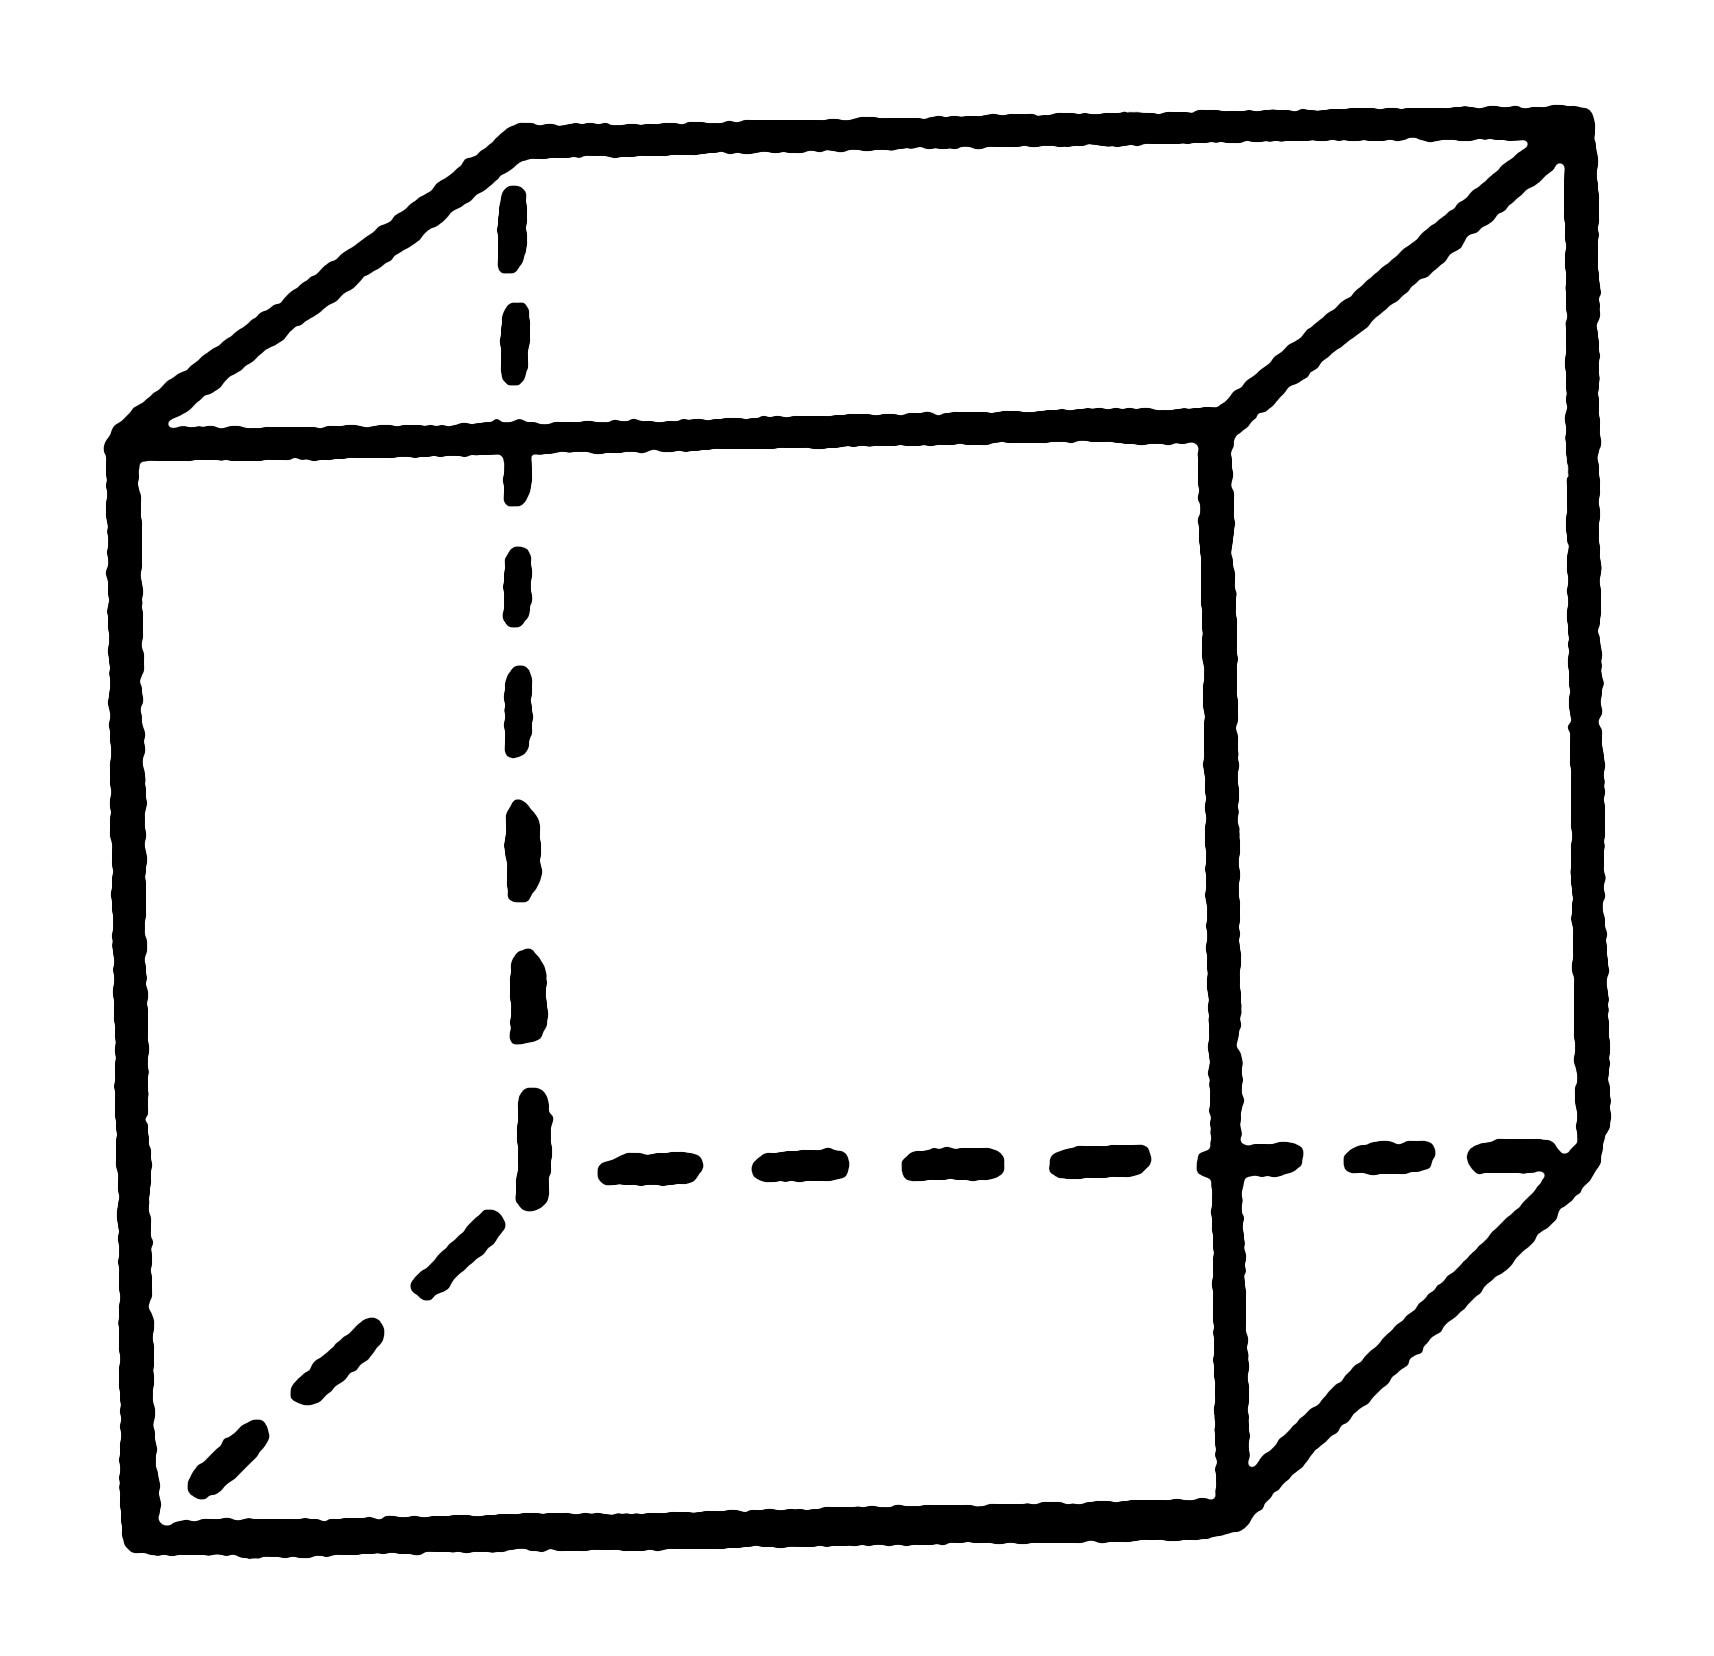 How To Find The Length Of An Edge Of A Cube on Printable Shape Coloring Pages